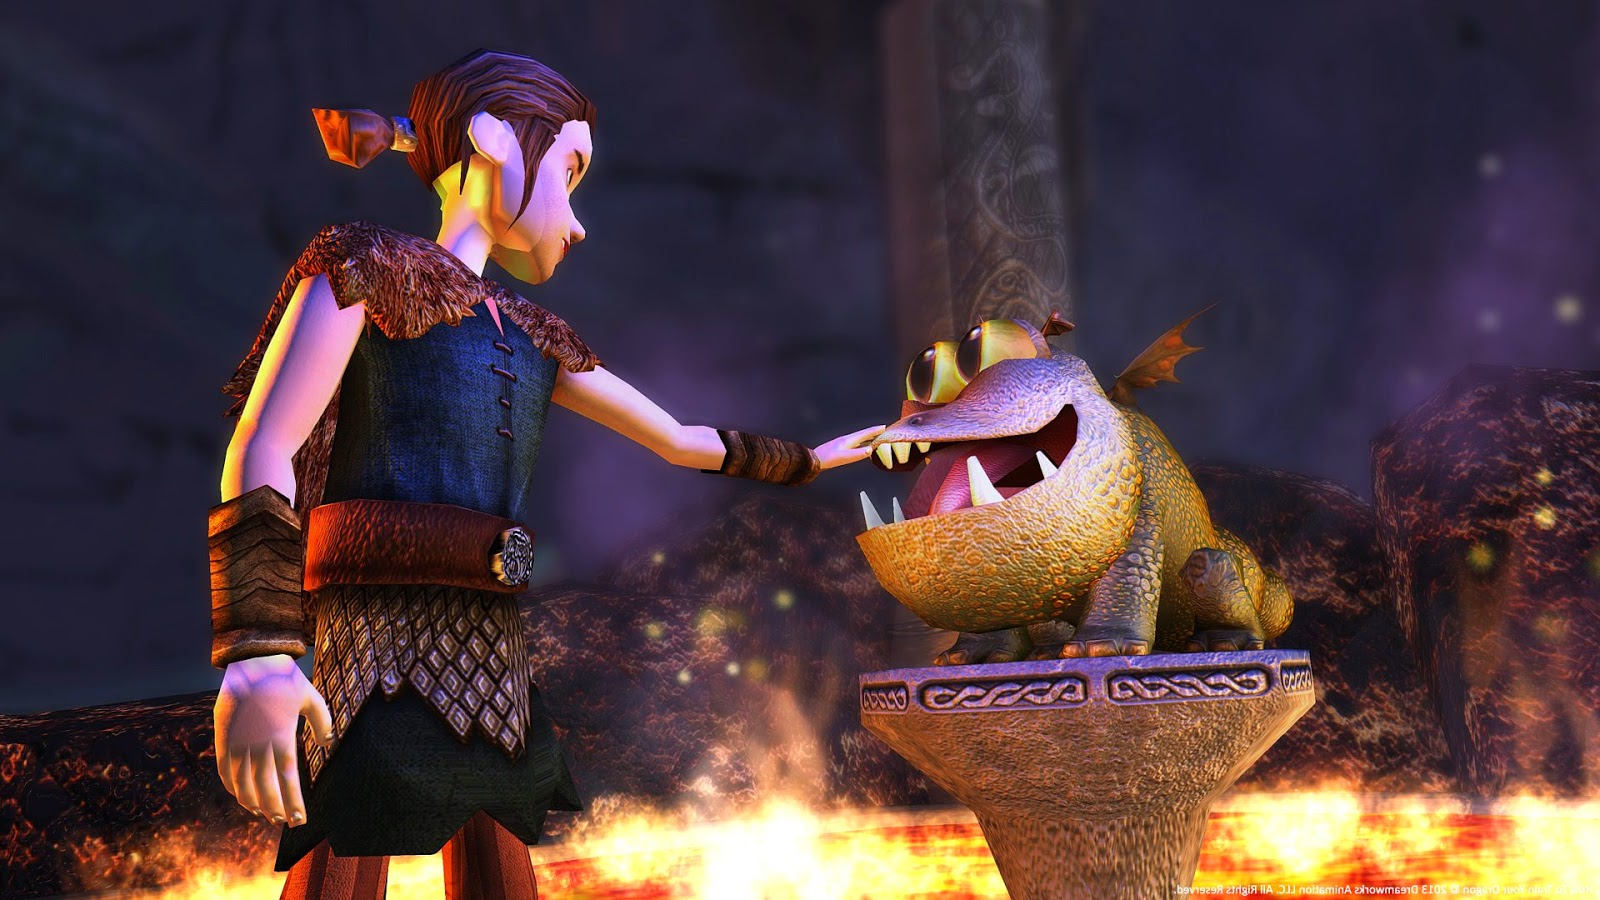 Download how to train your dragon 2 2014 full hd movie free the download how to train your dragon 2 2014 full hd movie free ccuart Image collections